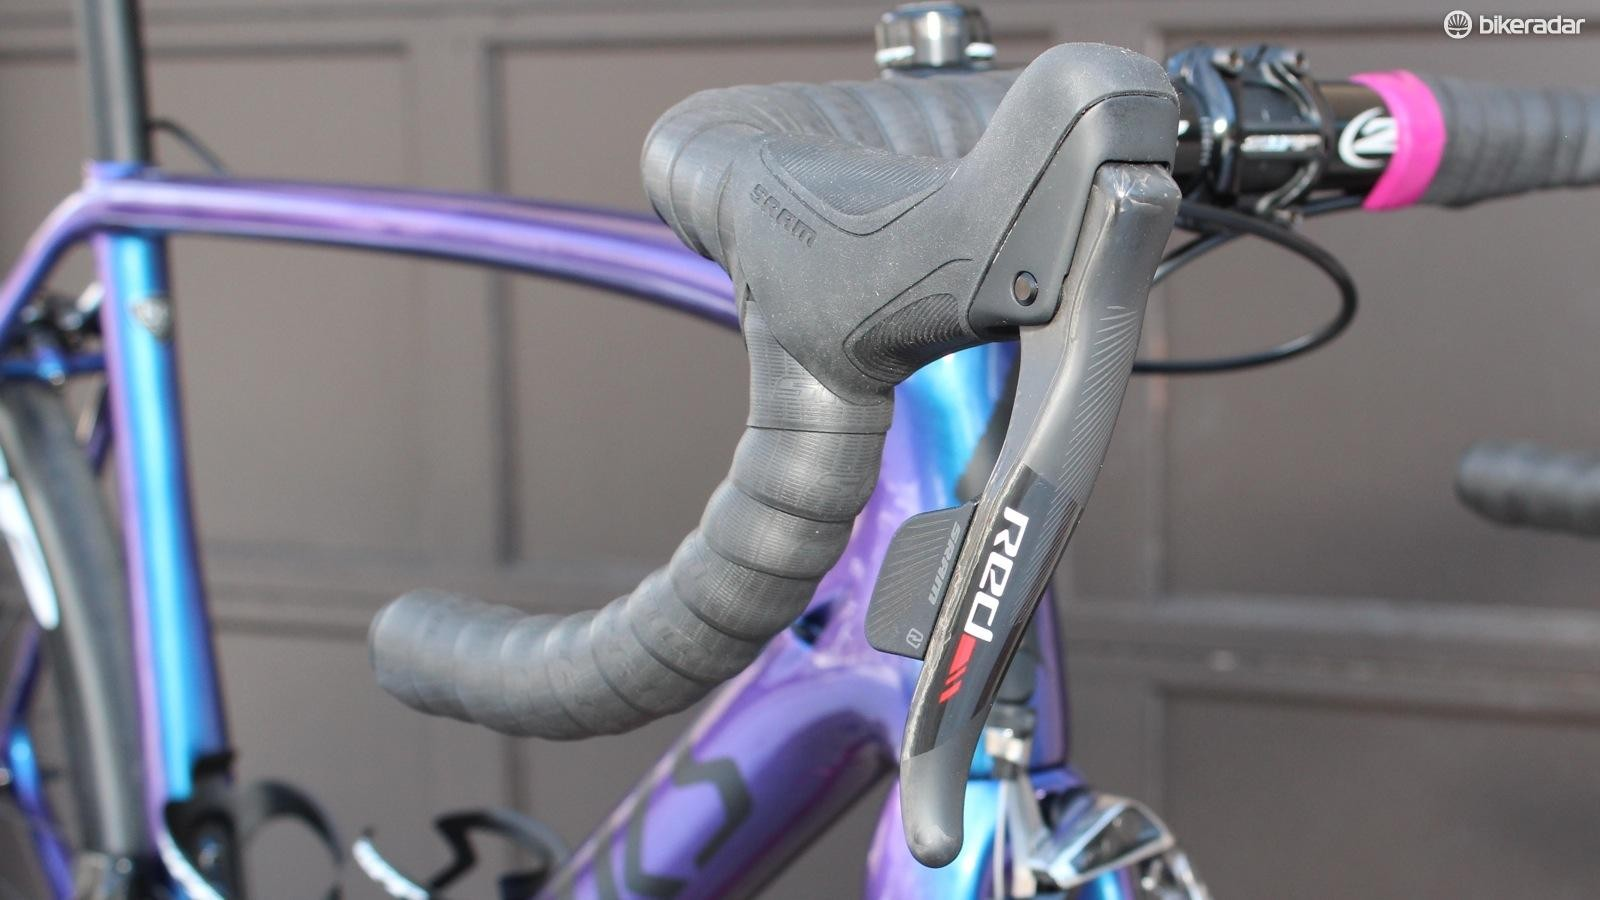 SRAM eTap has the cleanest layout of any modern shifter